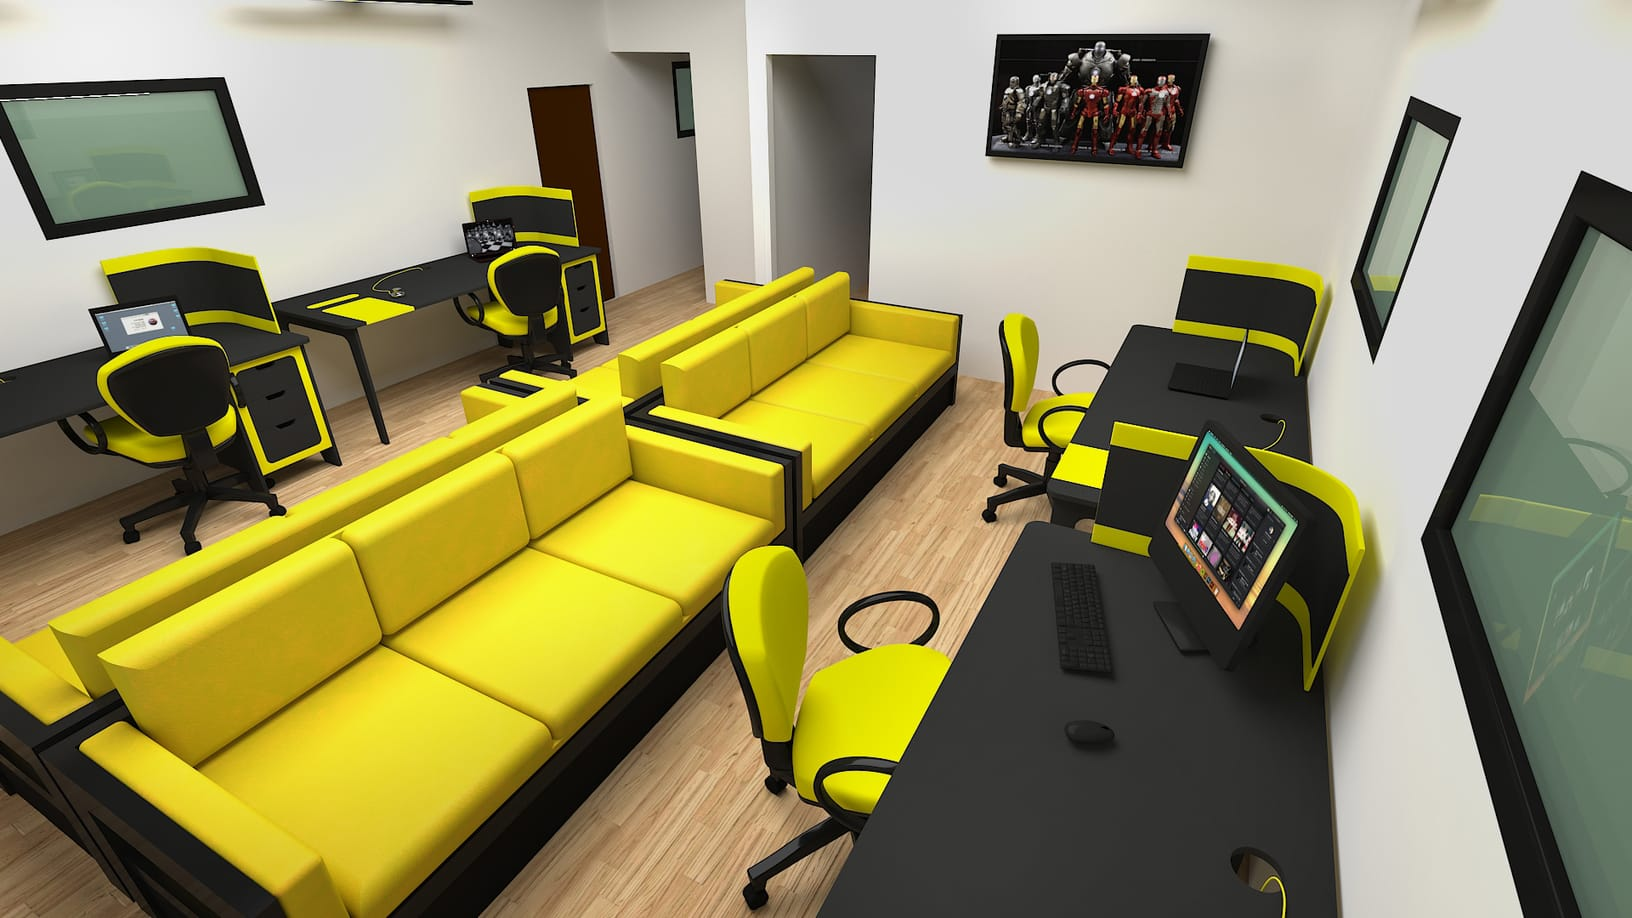 3d rendering services of a yellow office building